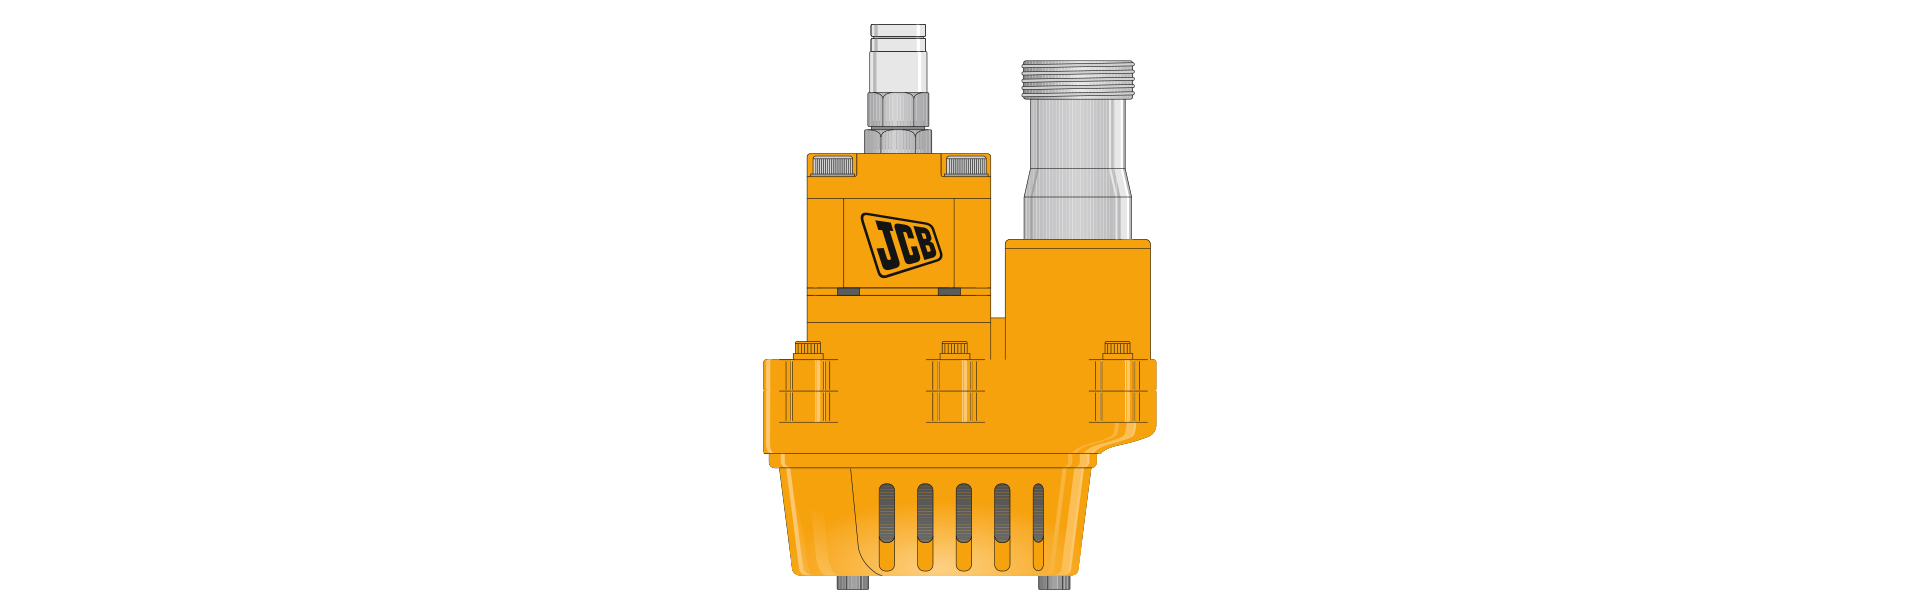 Image of a Submersible Pump